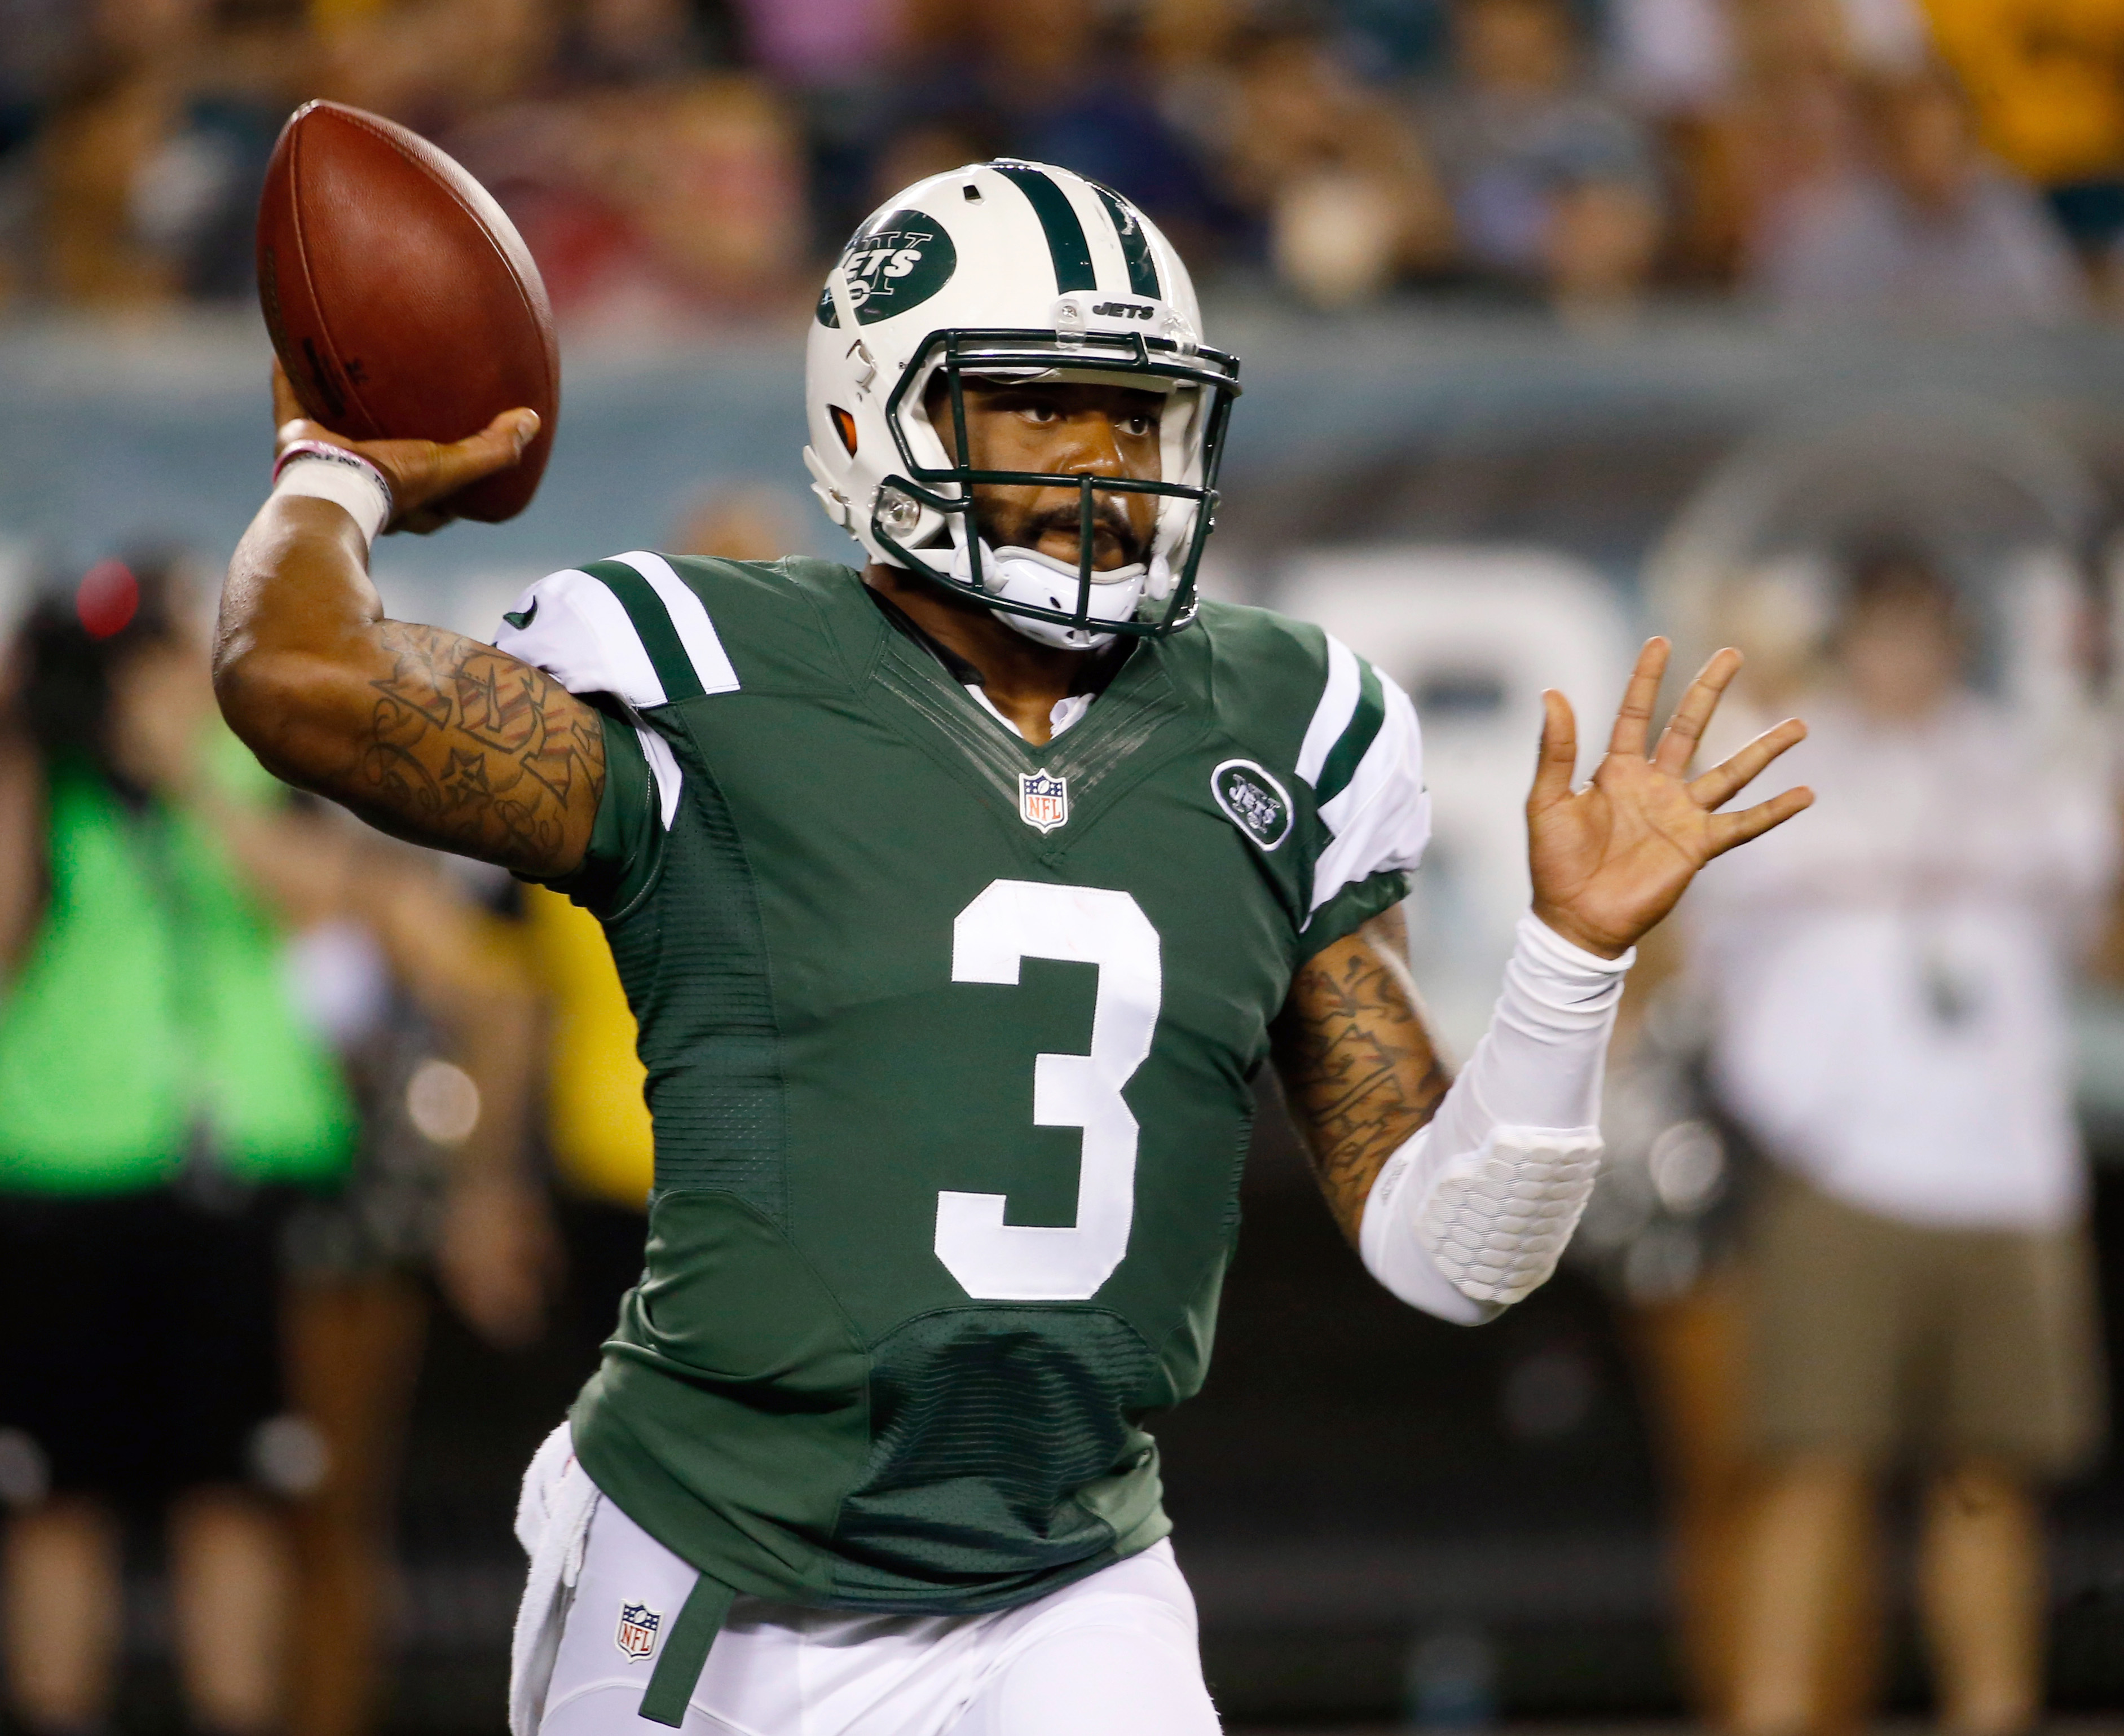 FILE - In this August 2014 file photo, New York Jets' Tajh Boyd passes during the second half of an NFL preseason football game against the Philadelphia Eagles in Philadelphia. Boyd, who was a star college quarterback, is hoping to resurrect his career as